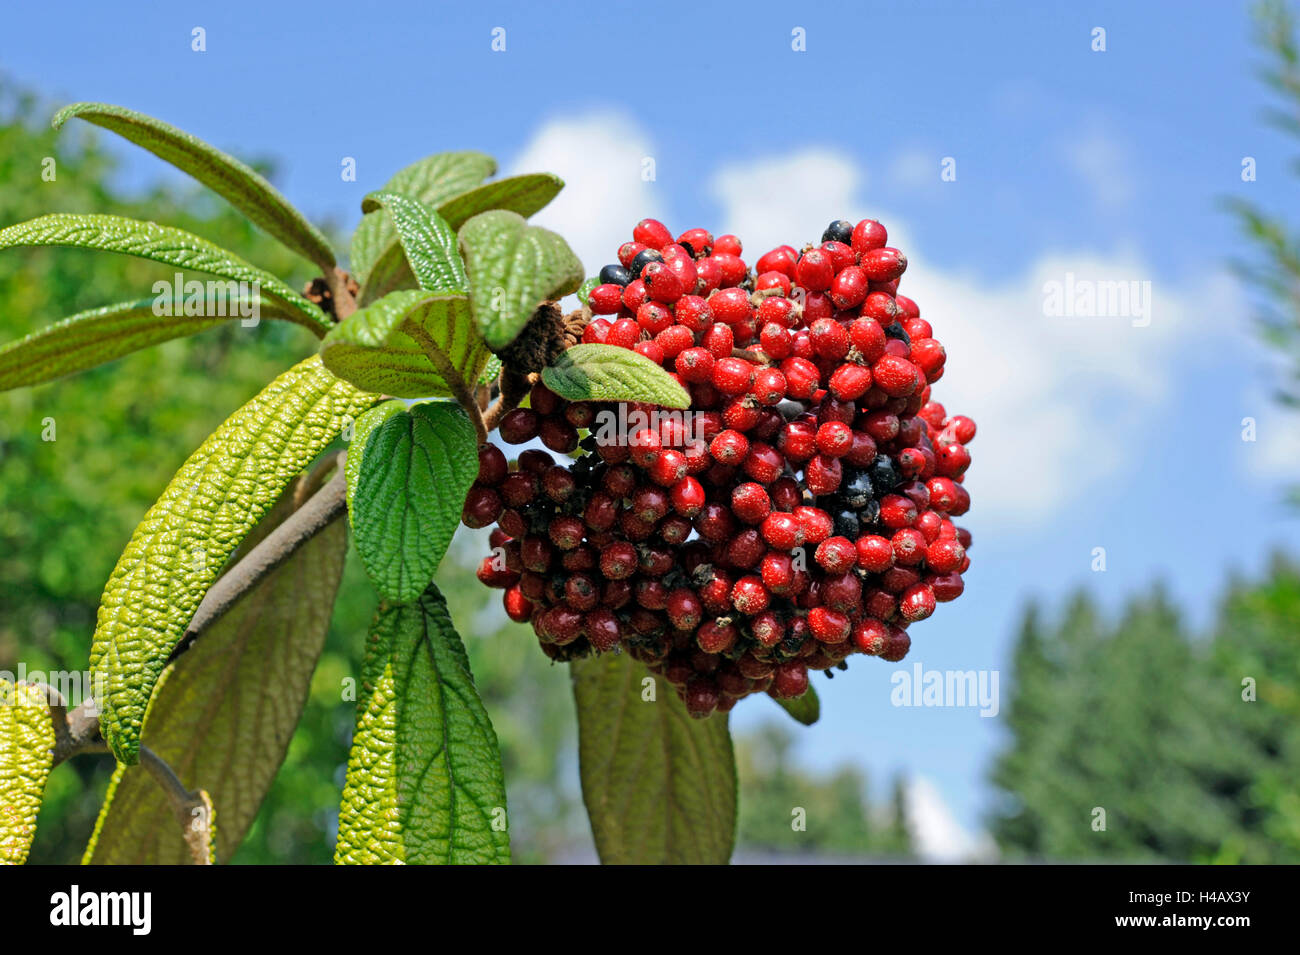 The red fruits of the leatherleaf viburnum, Viburnum rhytidophyllum, staining black later Stock Photo